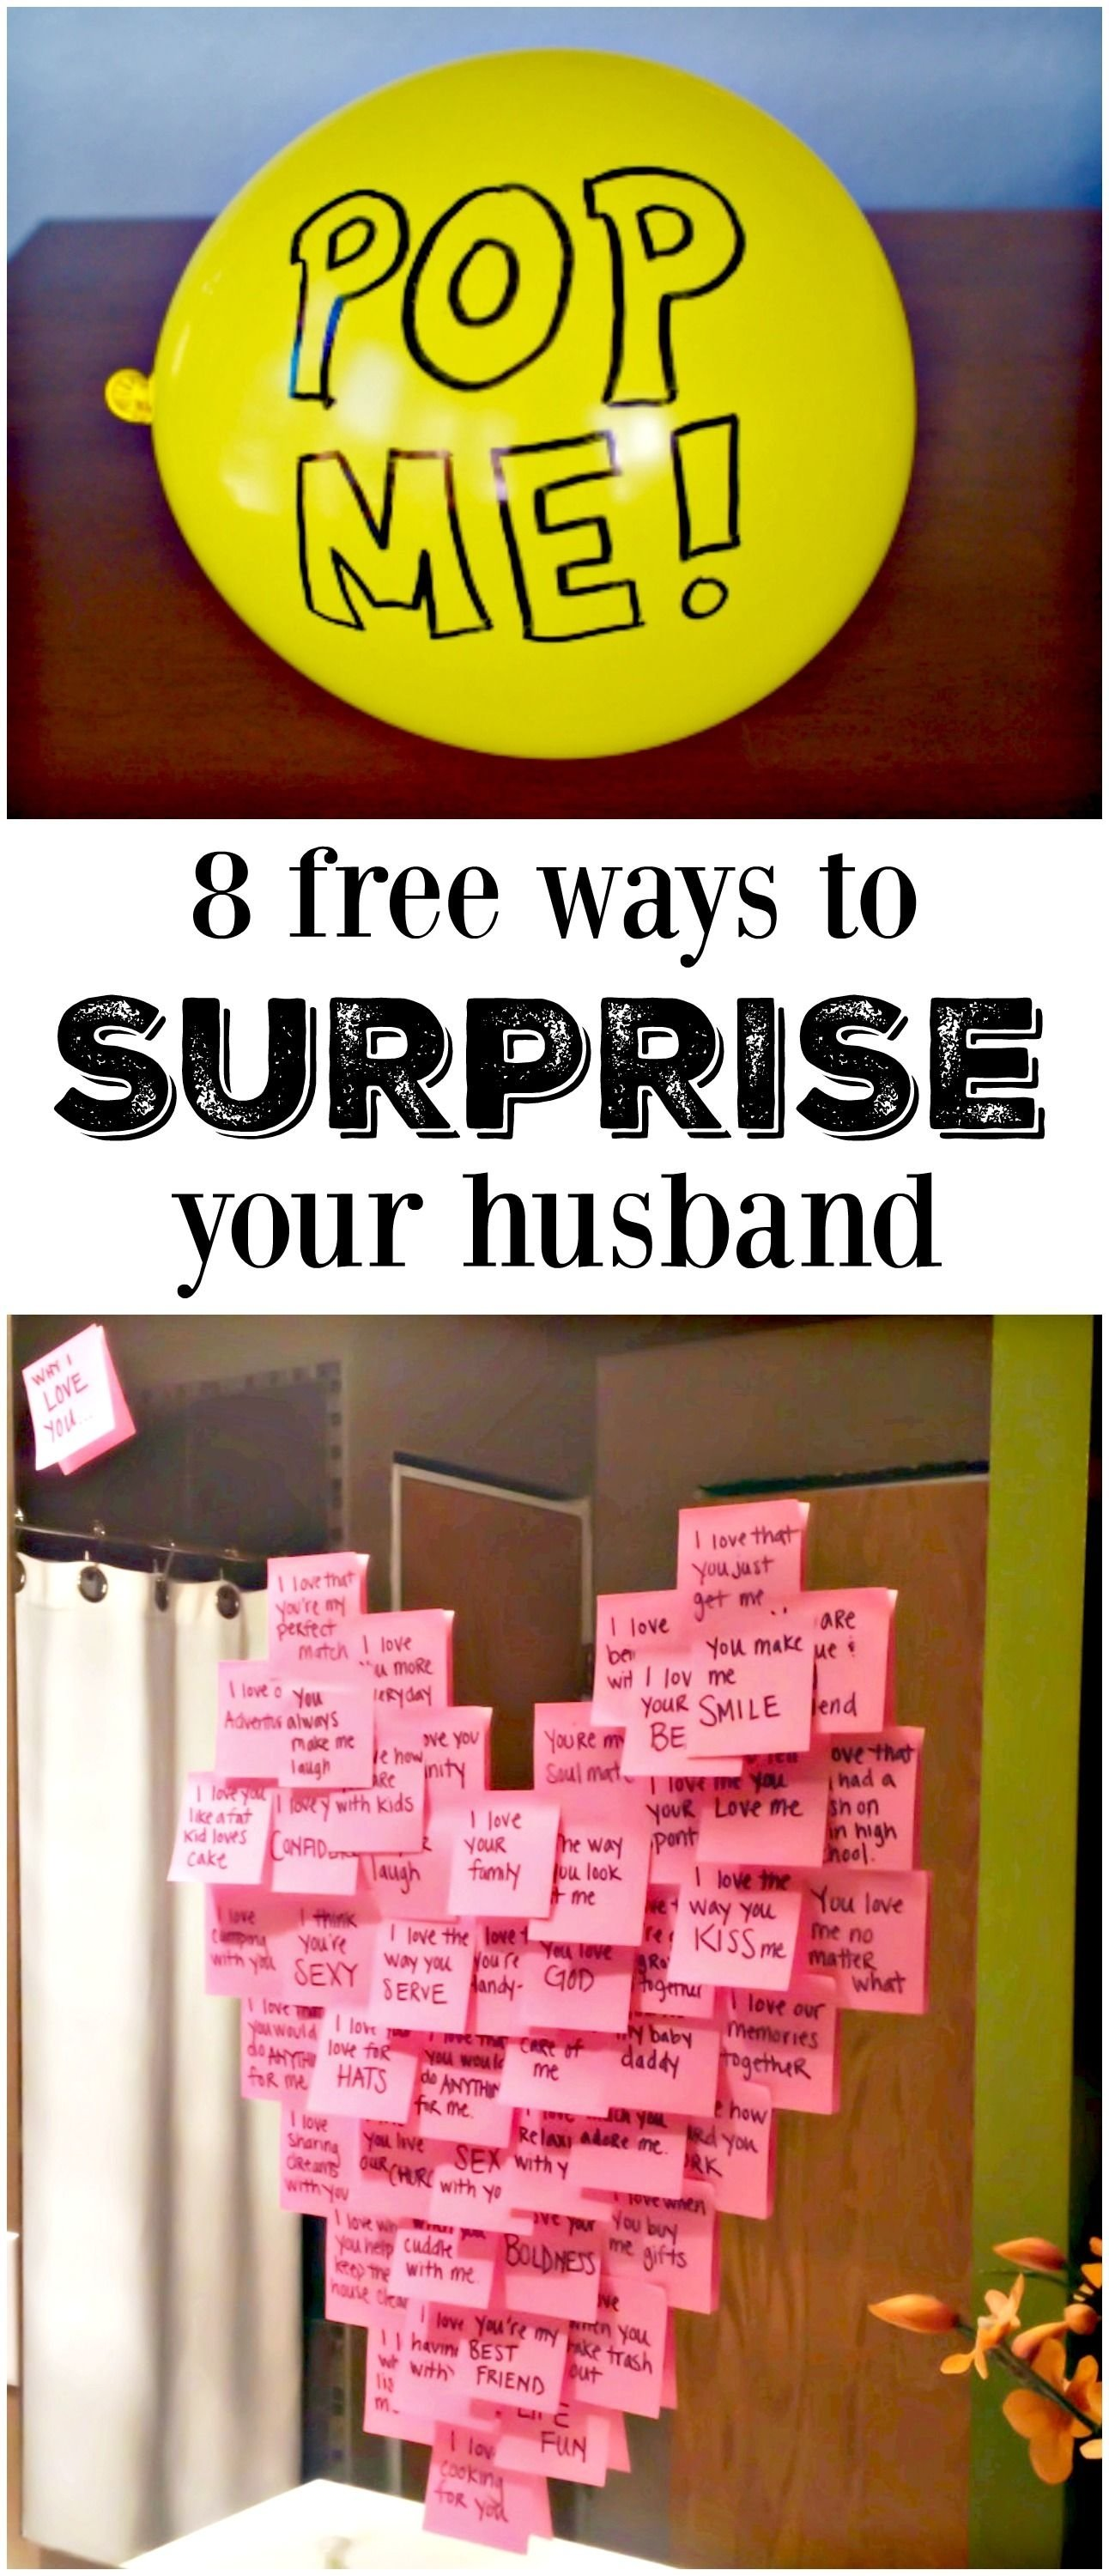 10 Cute Birthday Gifts For Husband Ideas 8 meaningful ways to make his day free gift and relationships 7